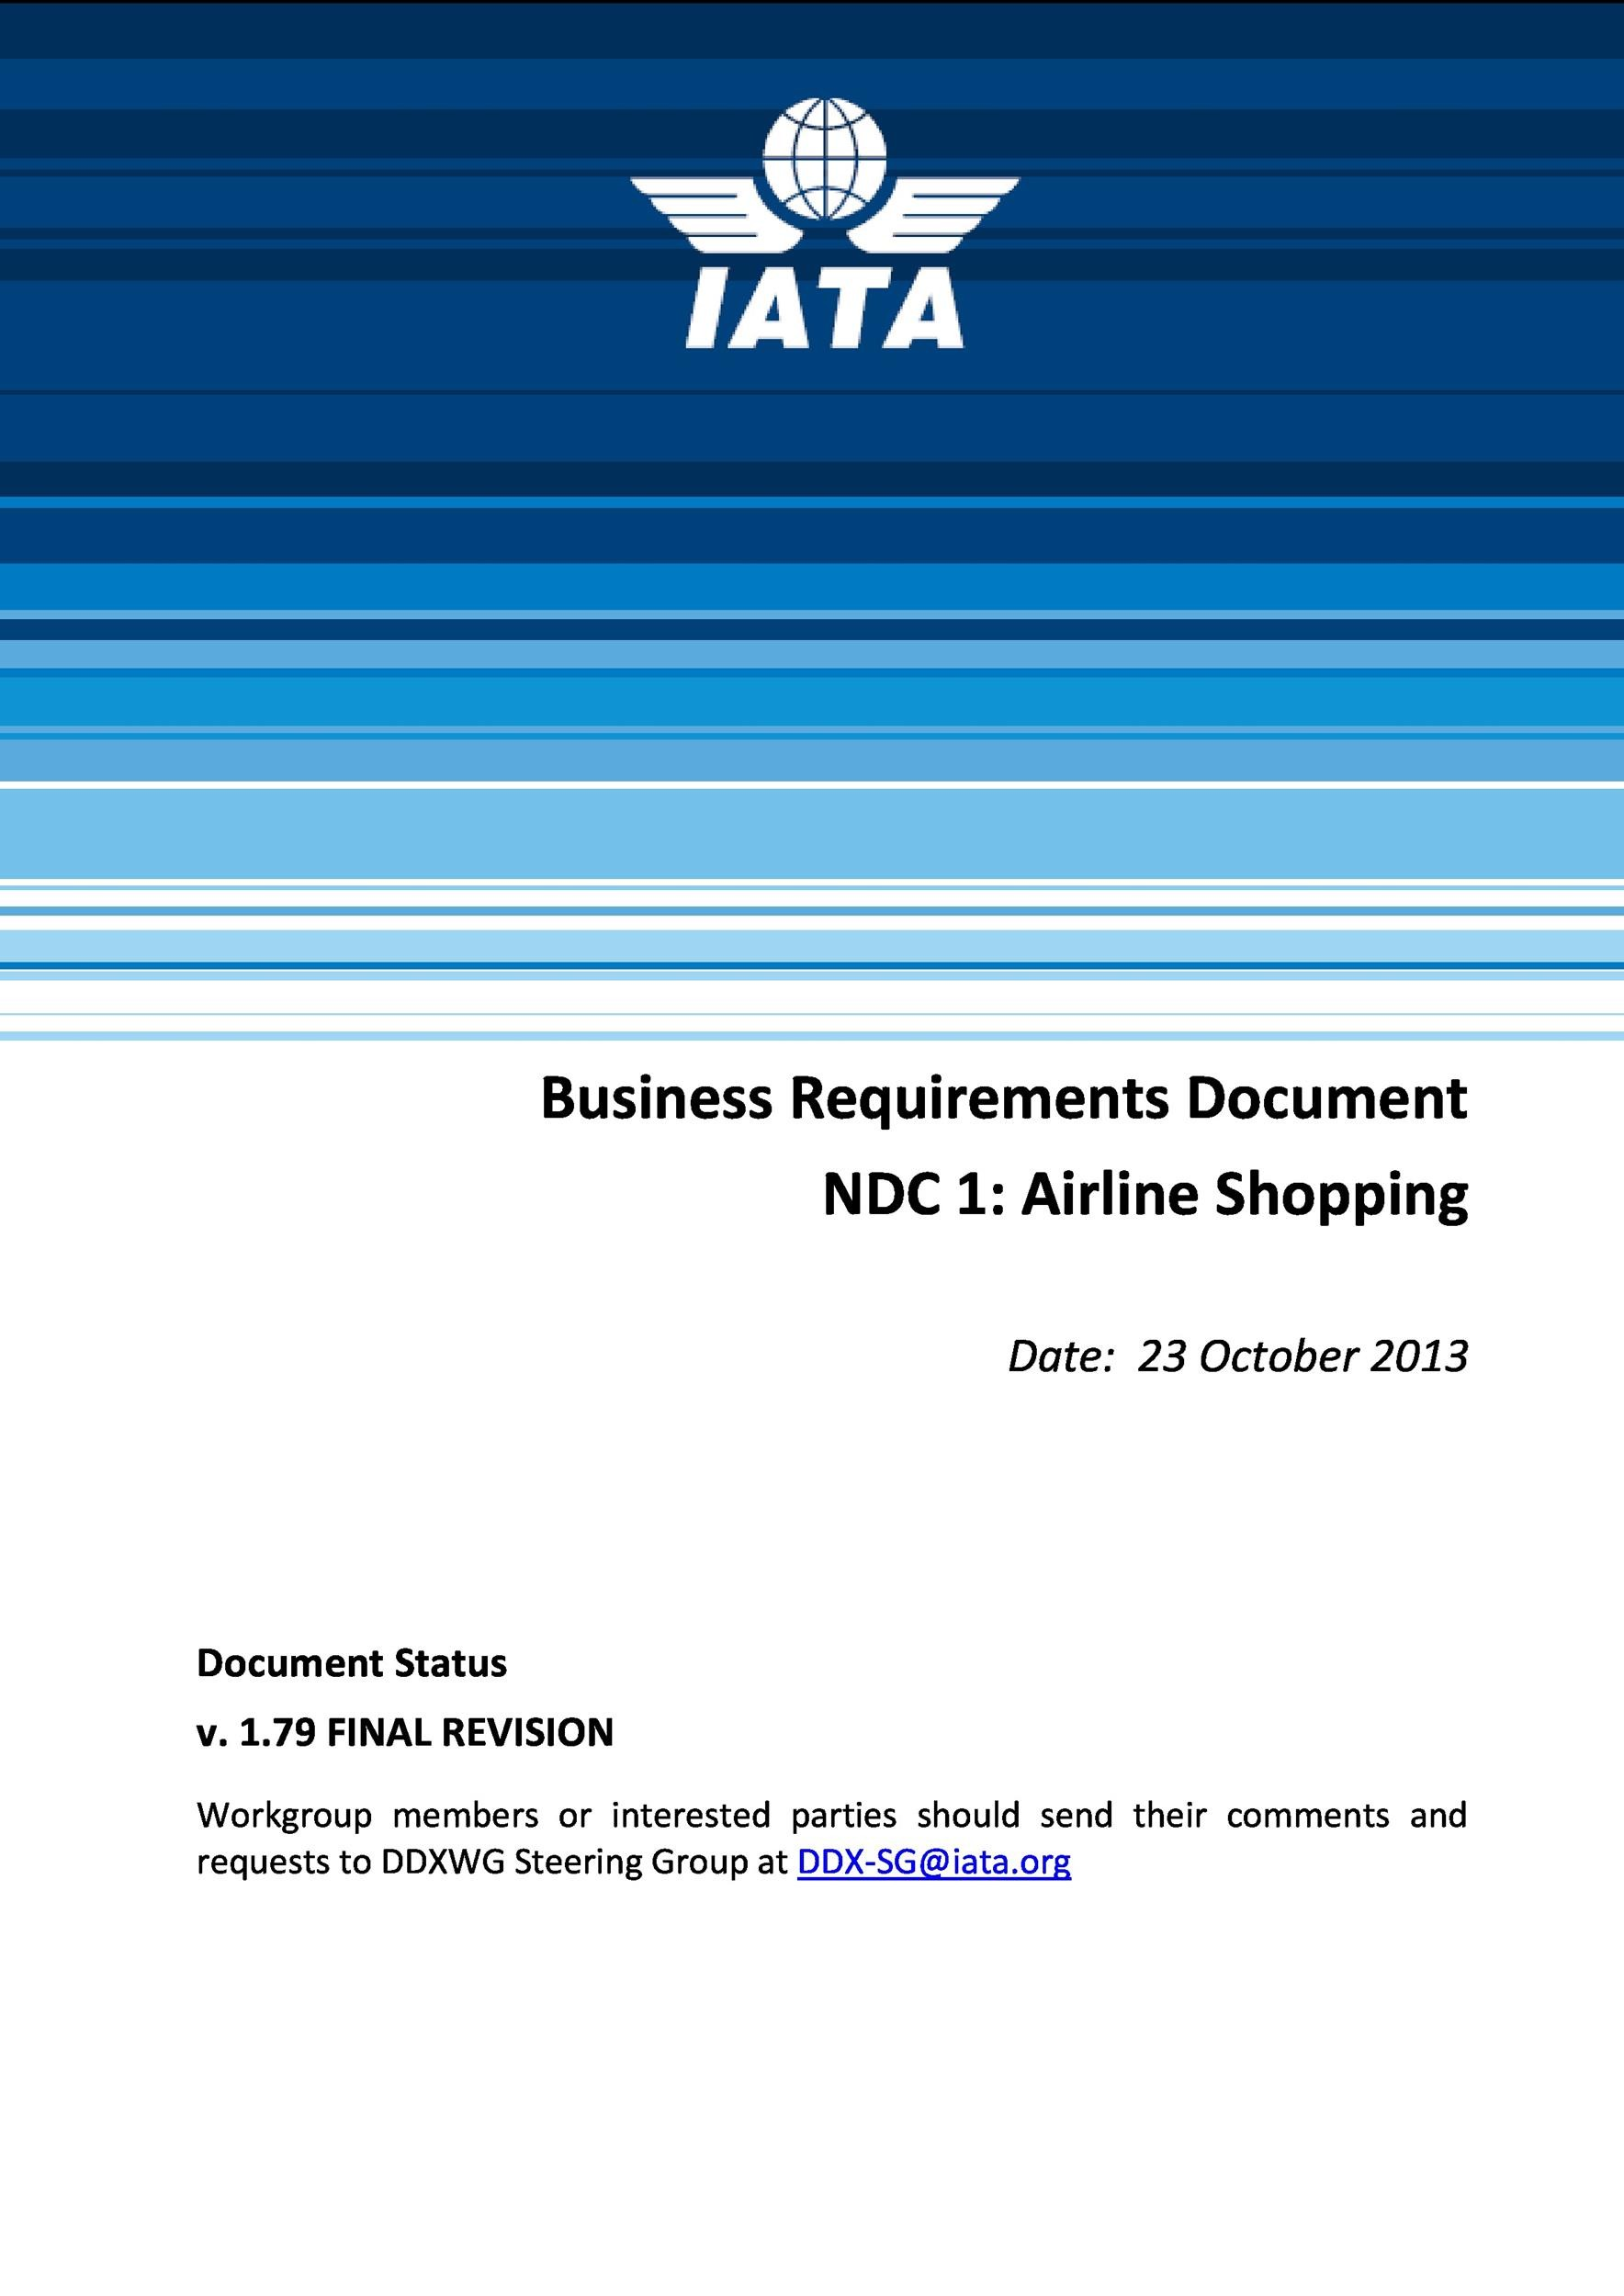 40 simple business requirements document templates template lab free business requirements document template 40 wajeb Image collections